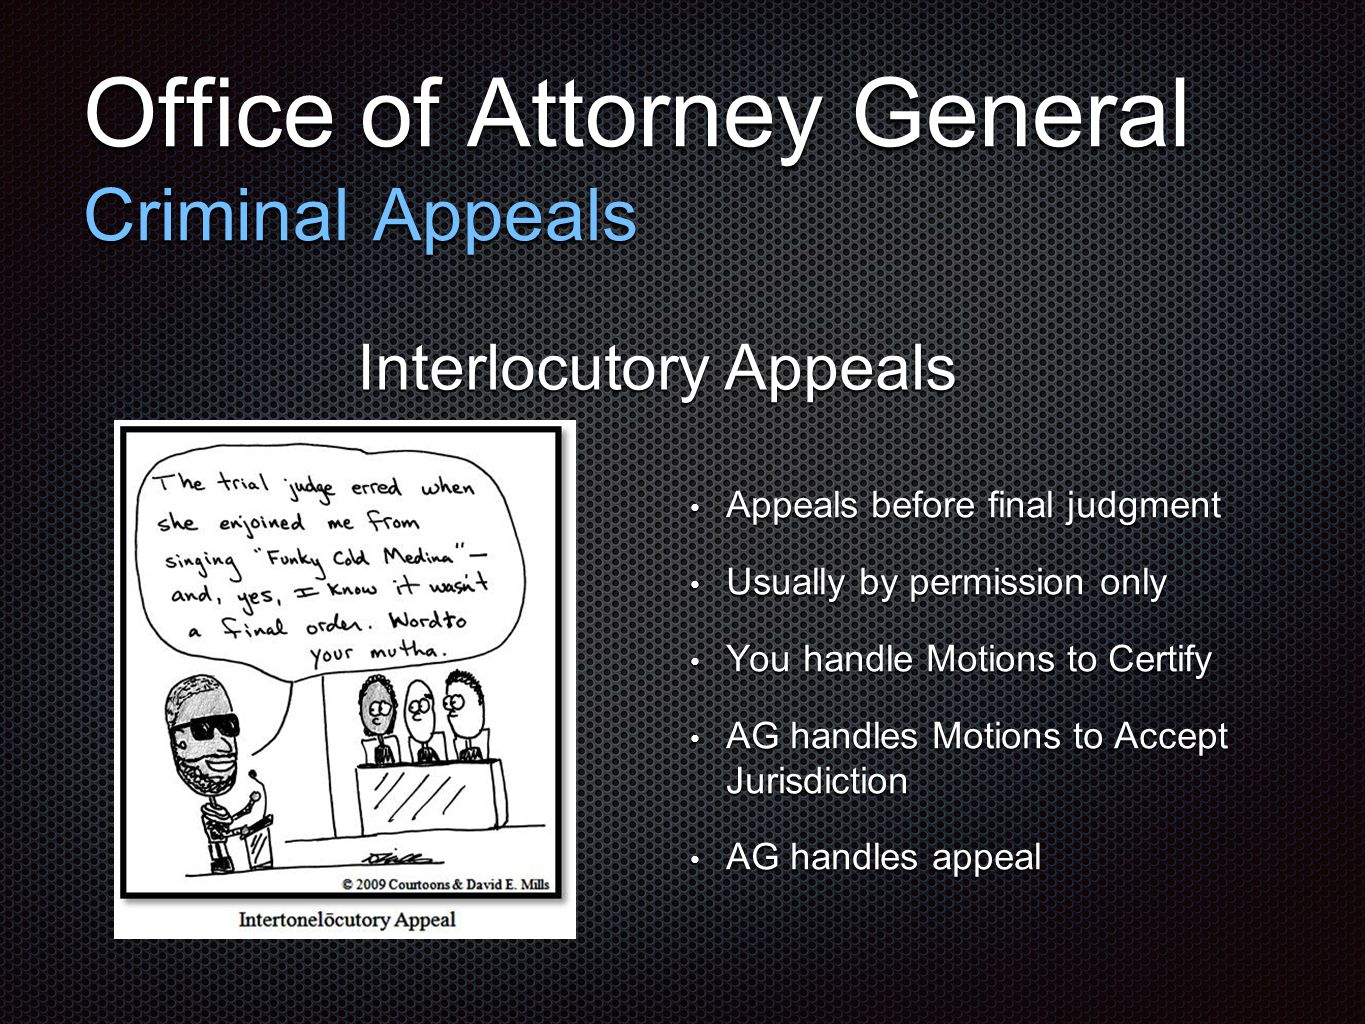 Office of Attorney General Criminal Appeals Interlocutory Appeals Appeals before final judgment Appeals before final judgment Usually by permission only Usually by permission only You handle Motions to Certify You handle Motions to Certify AG handles Motions to Accept Jurisdiction AG handles Motions to Accept Jurisdiction AG handles appeal AG handles appeal